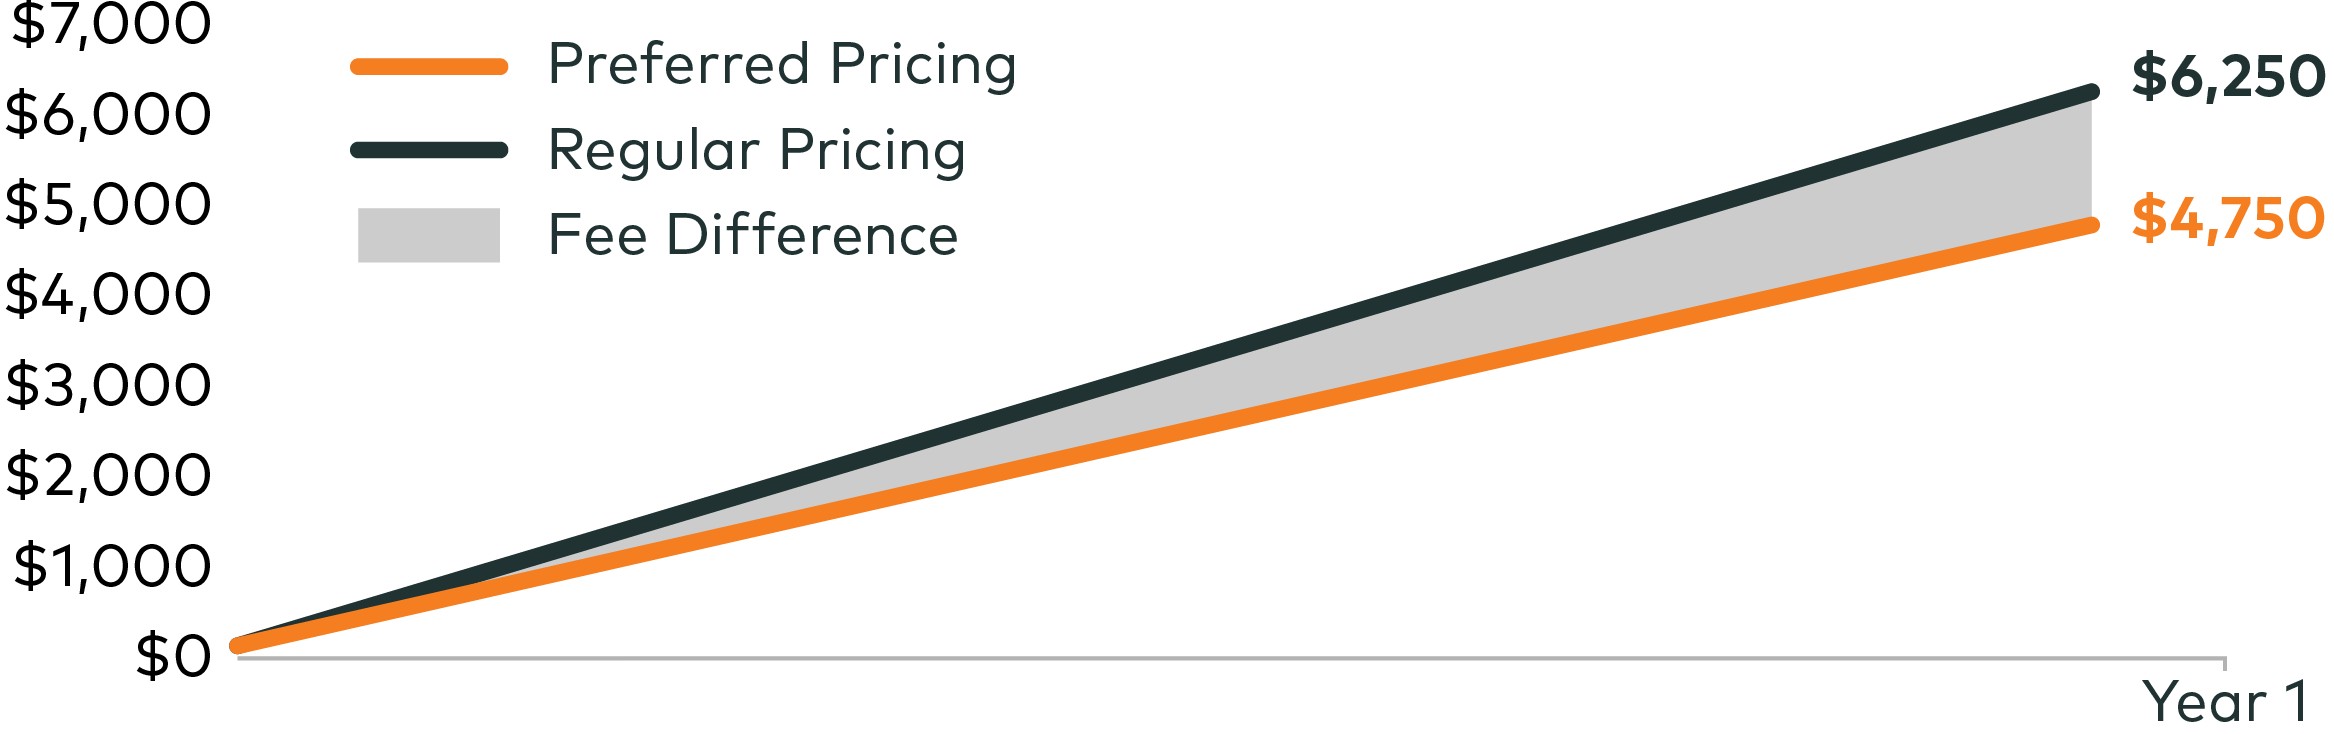 This chart illustrates the potential benefits that preferred pricing can offer.